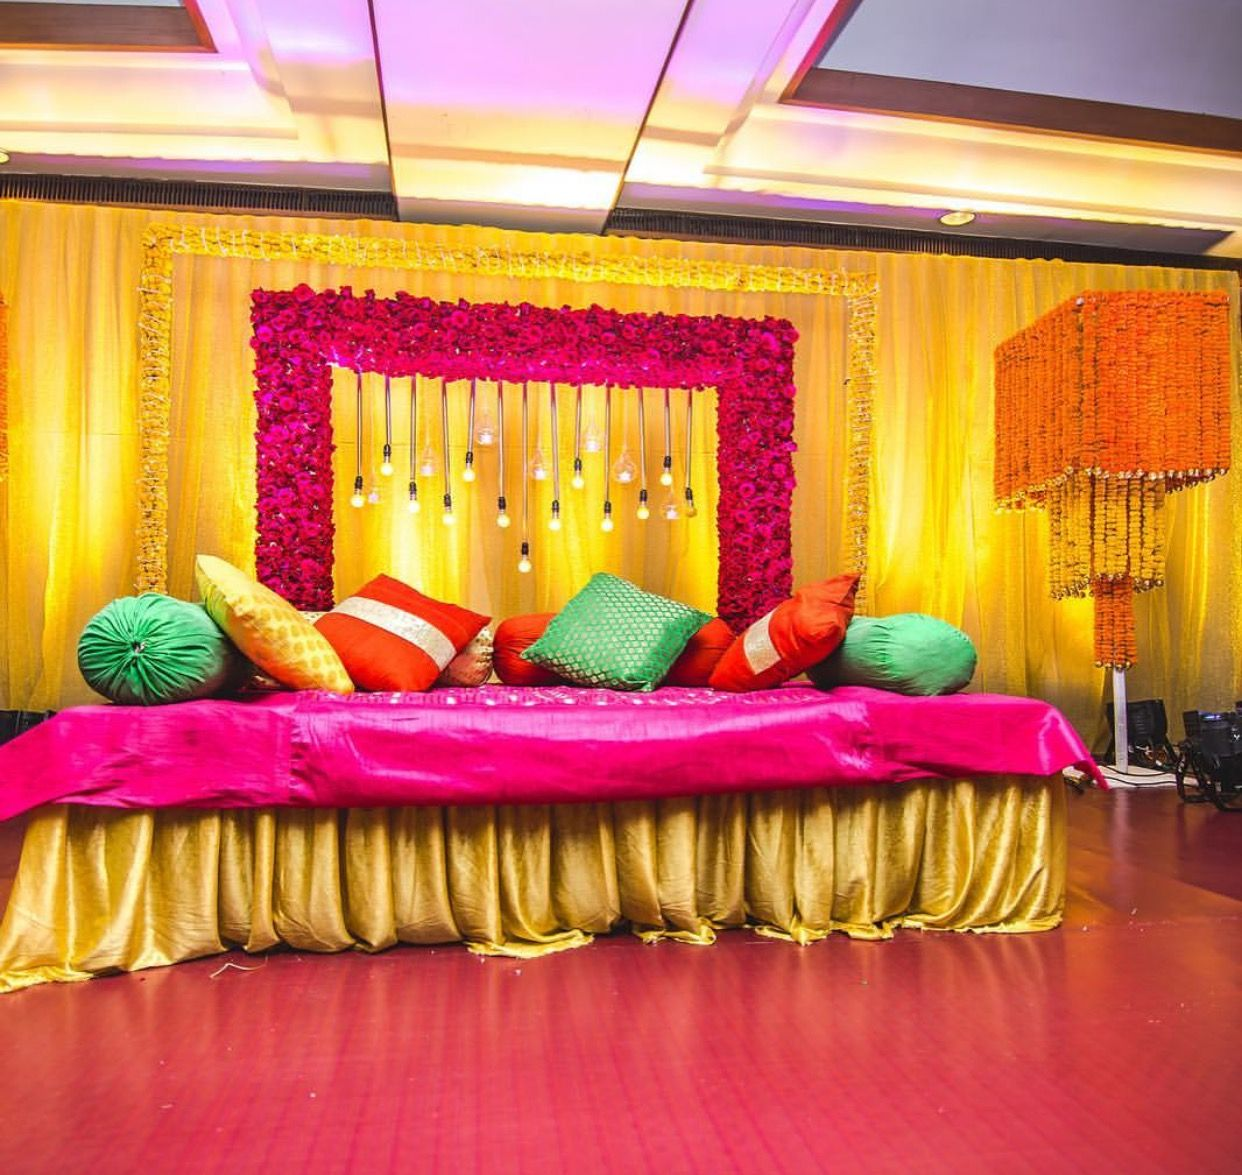 Celebrity Wedding Stage Decoration Photos: Pin By PATRICE LEE On INDIAN WEDDING In 2019